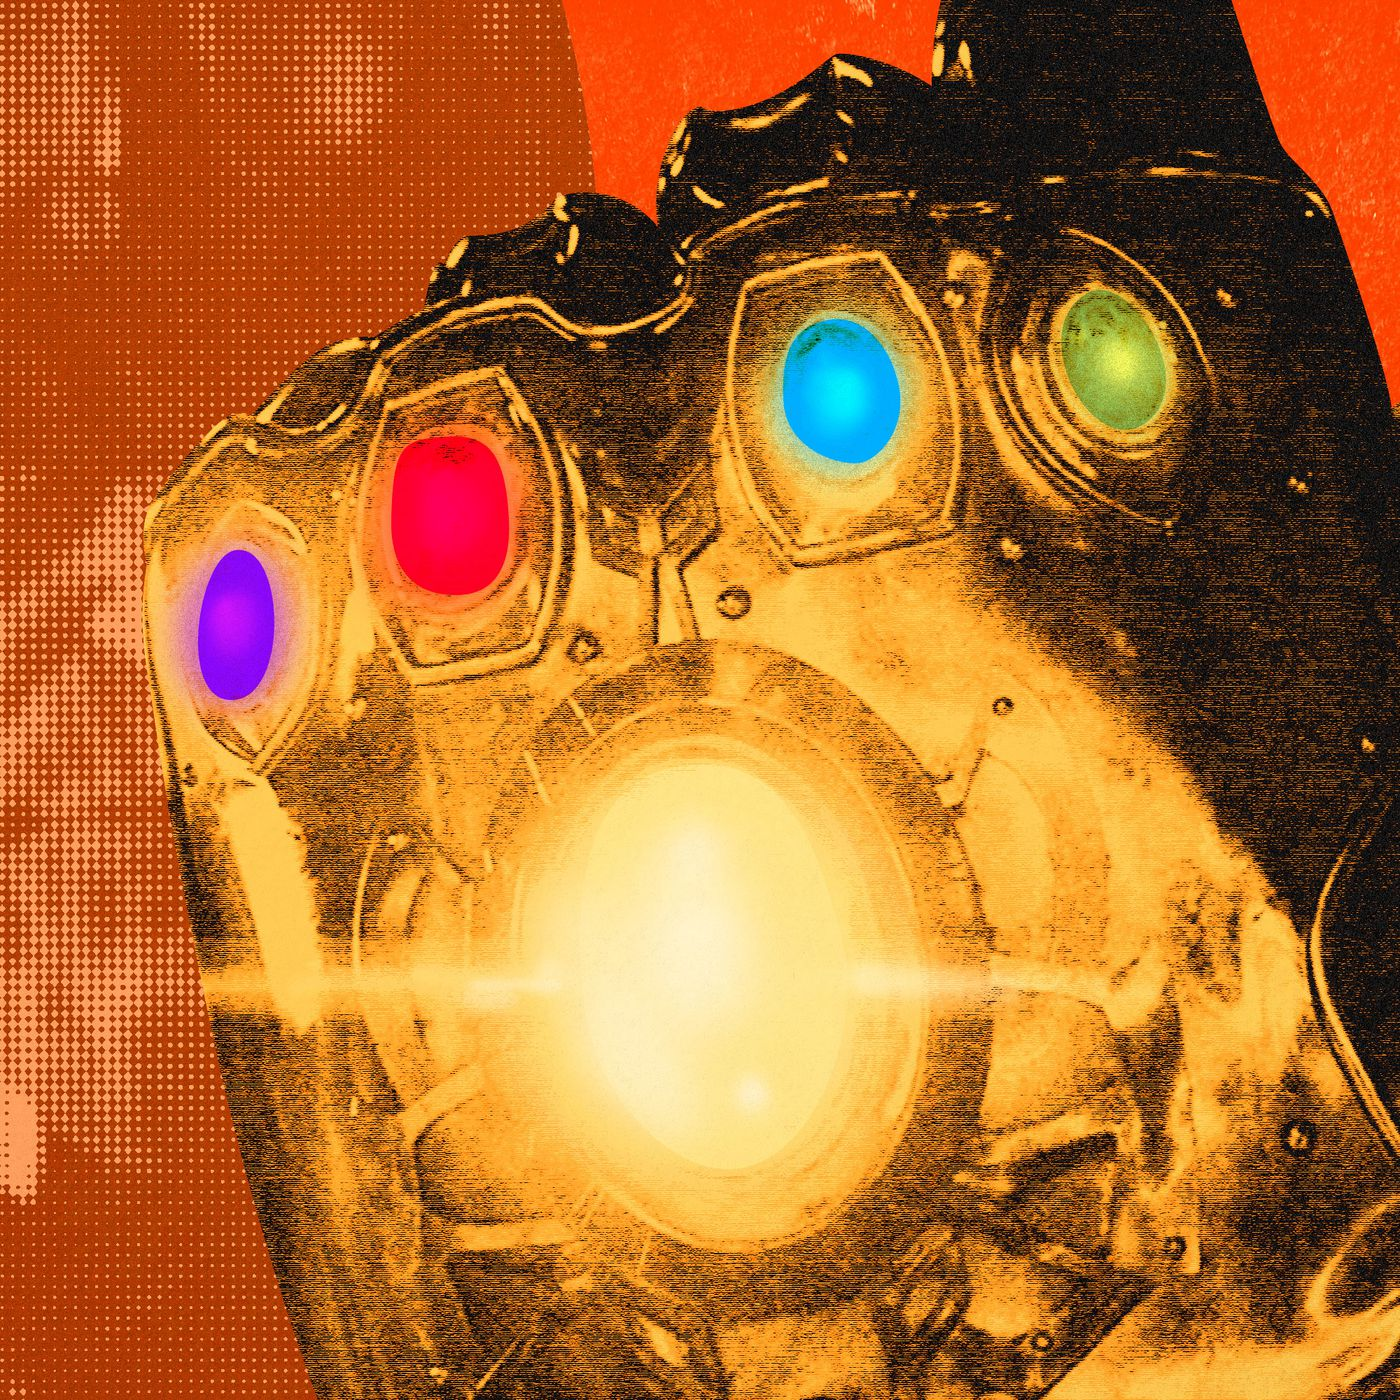 A Comprehensive Guide to the Infinity Stones Before 'Avengers: Endgame' -  The Ringer